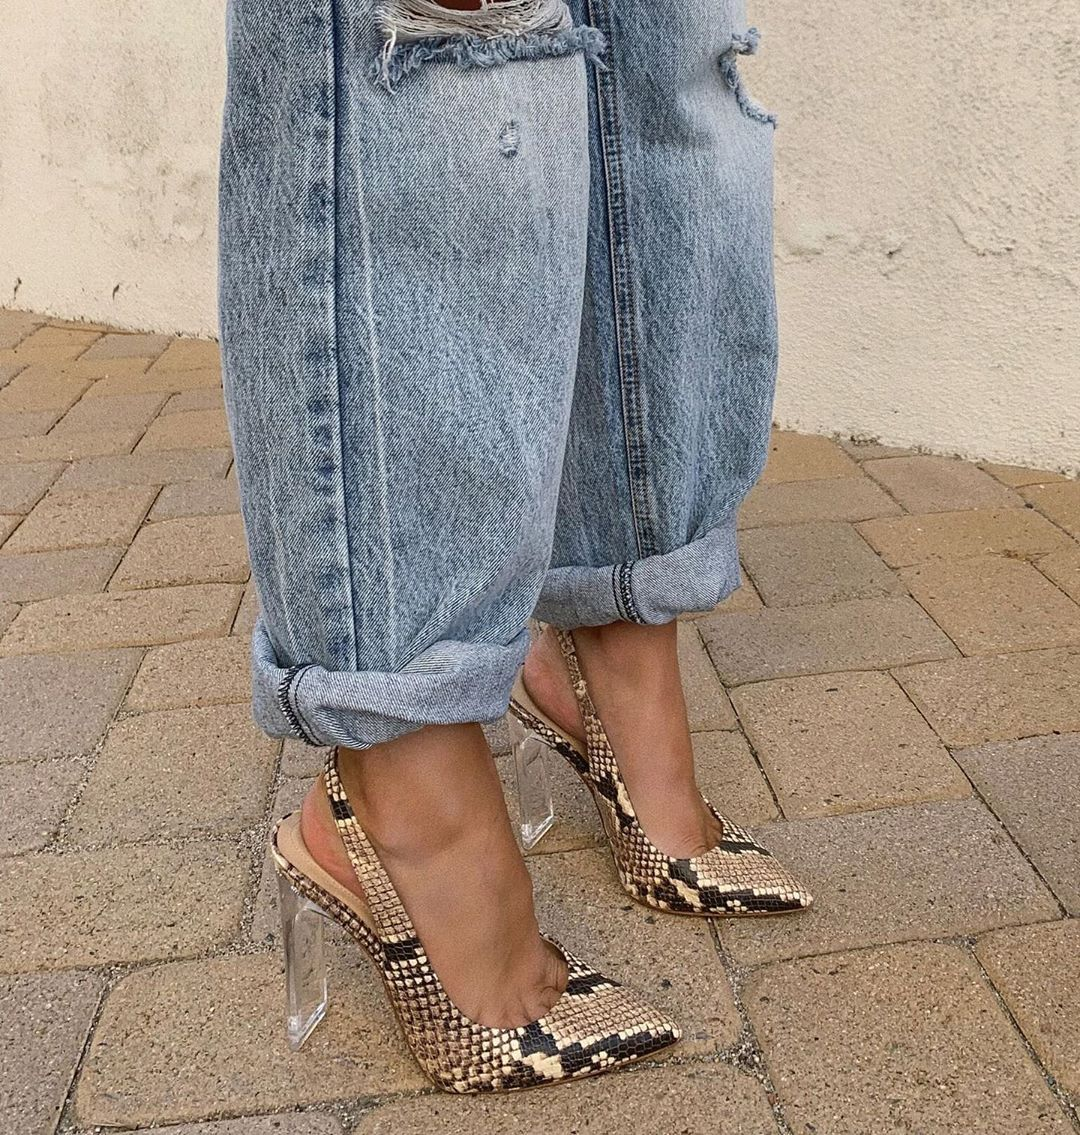 "Photo of ALDO shoes on Instagram: ""On her way to slay the day. Shop @briknopf show-stopping stilettos Feiwias in bio. #AldoCrew #AldoShoes"" – The higher the heel….."